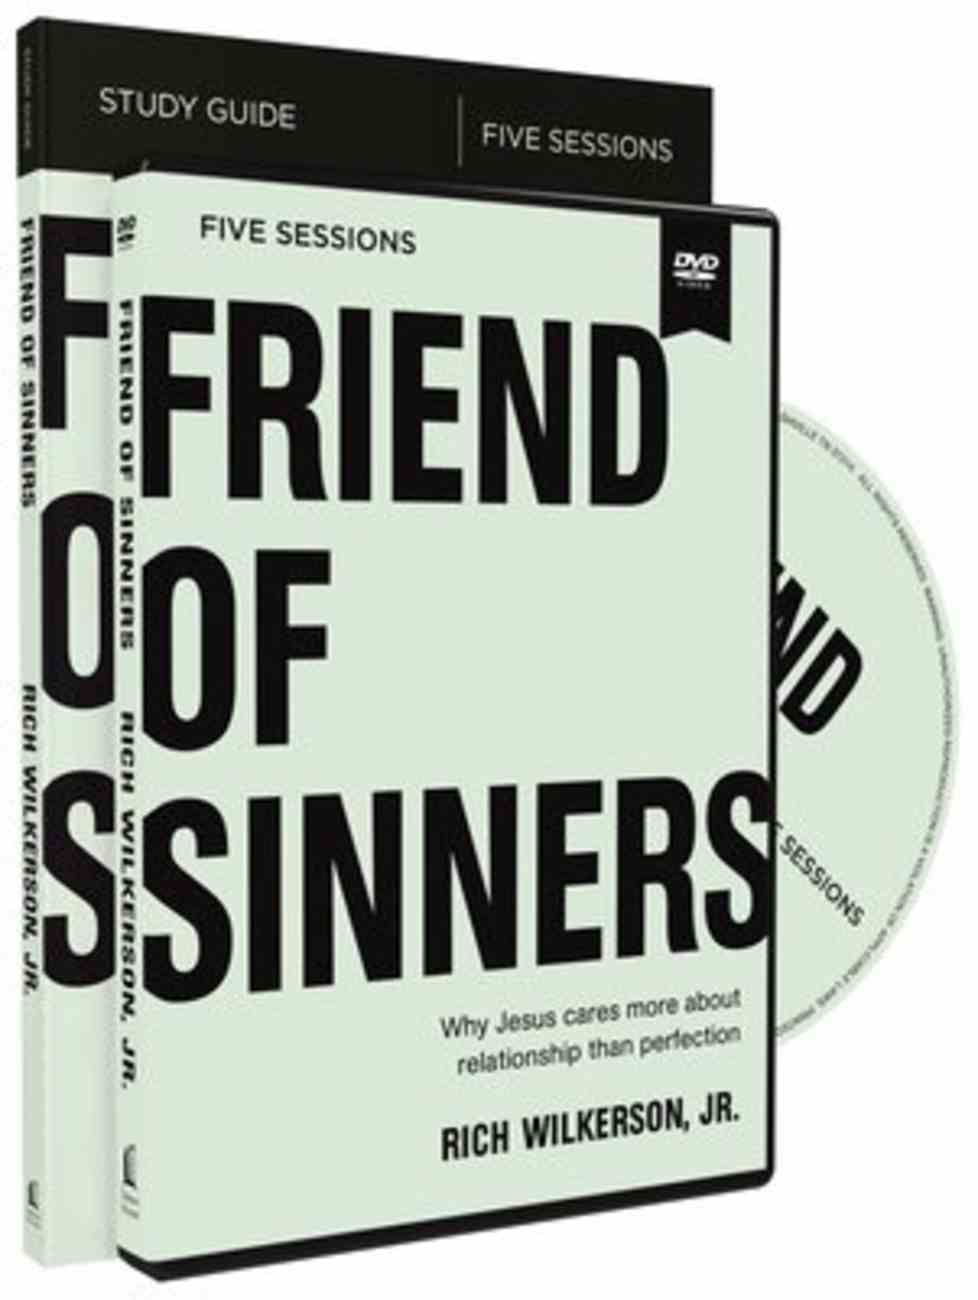 Friend of Sinners: Why Jesus Cares More About Relationships Than Perfection (Study Guide With Dvd) Pack